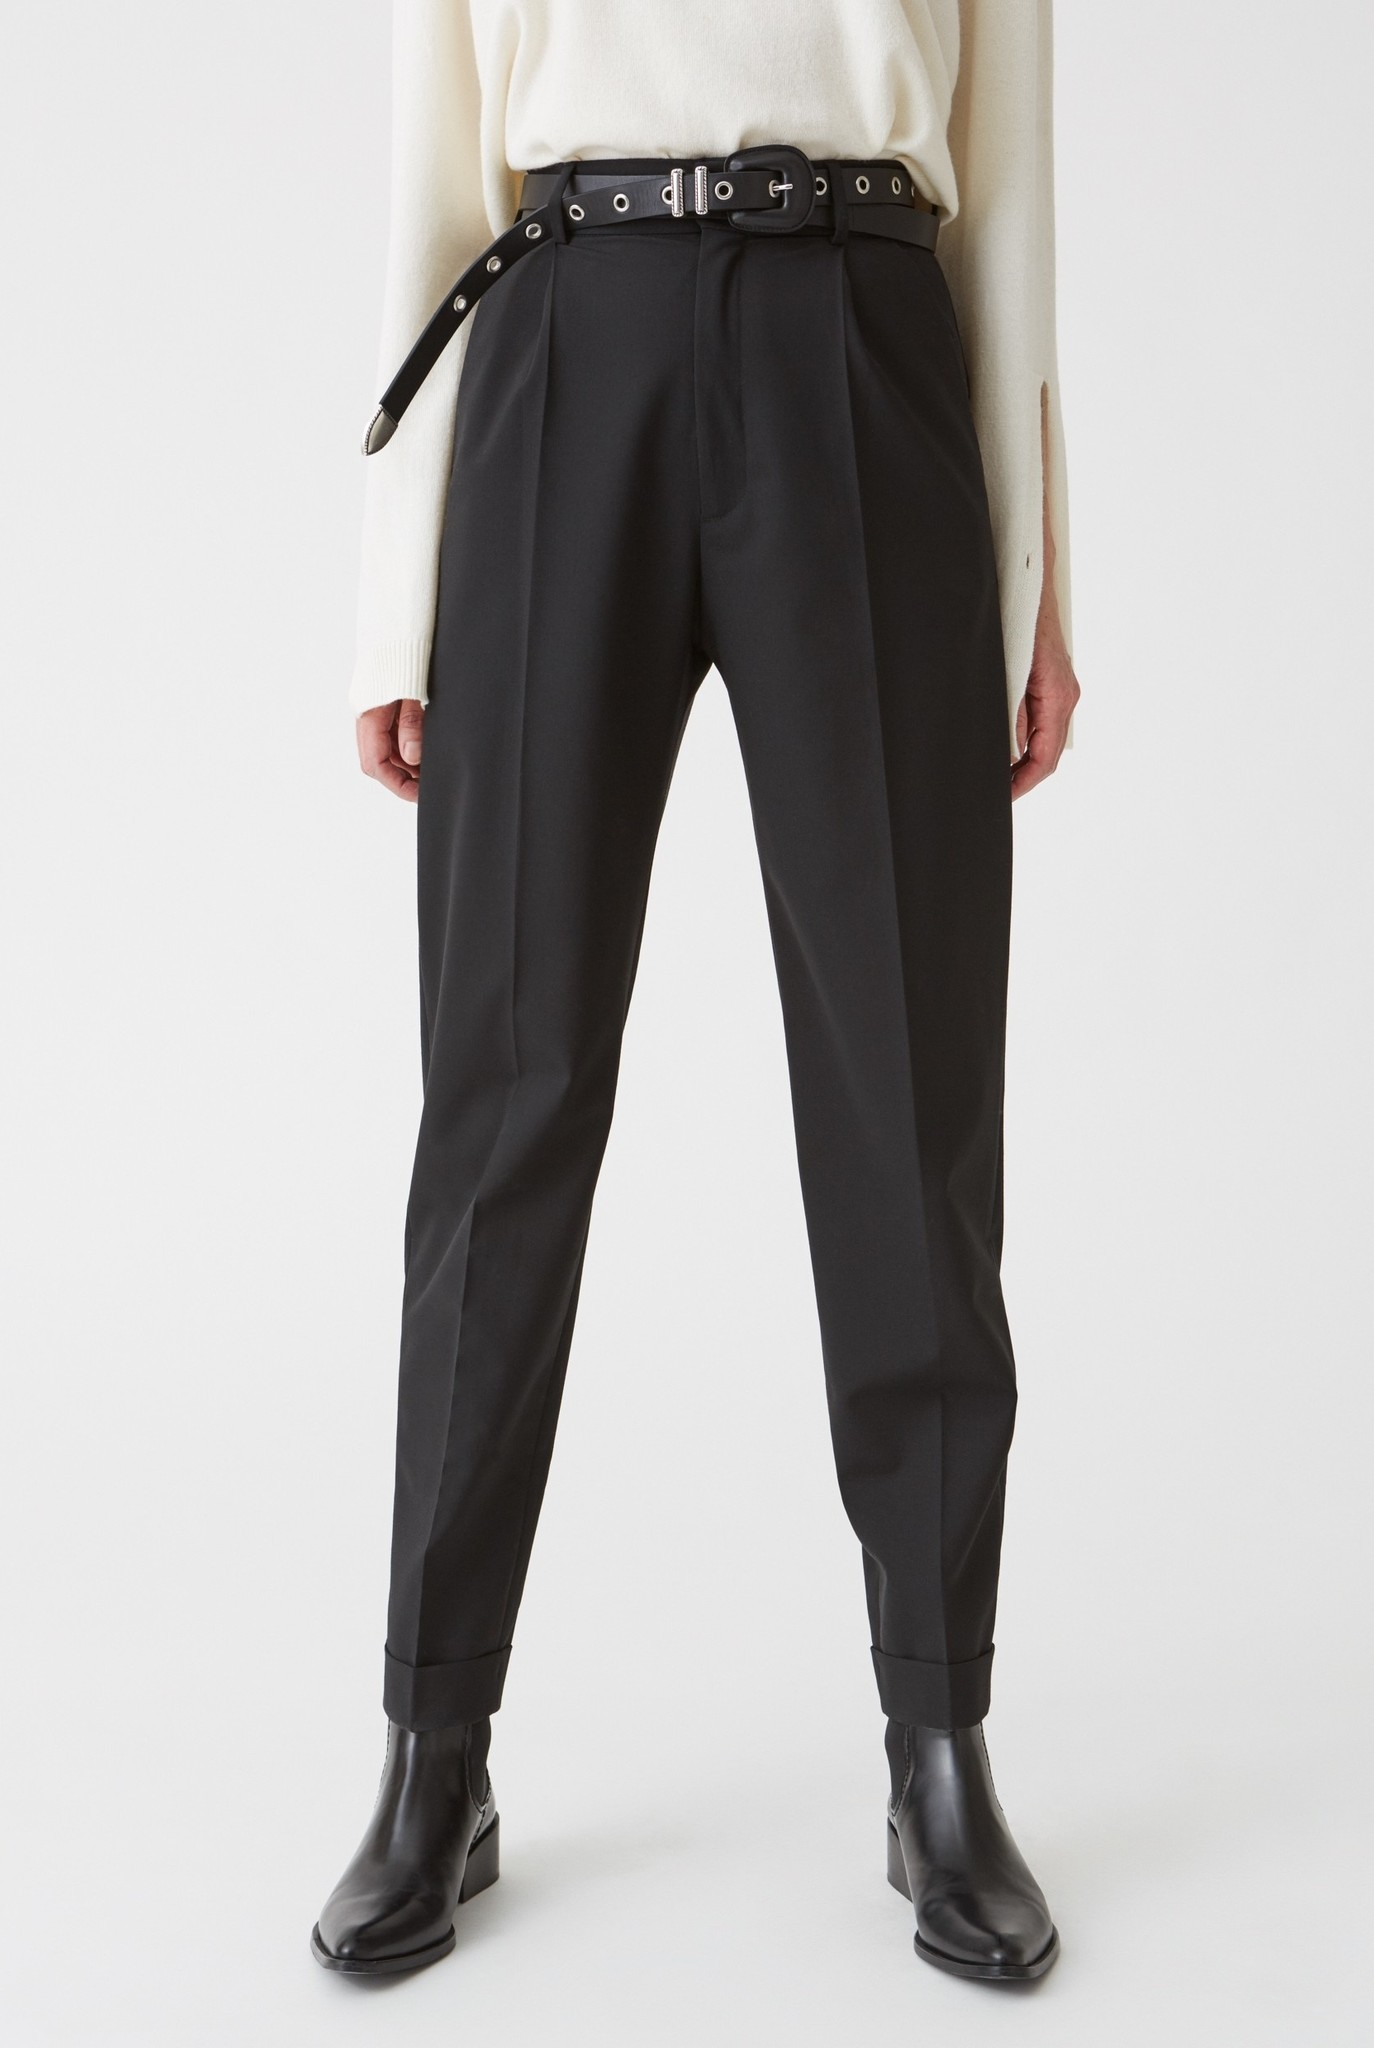 Star trouser Black Suit